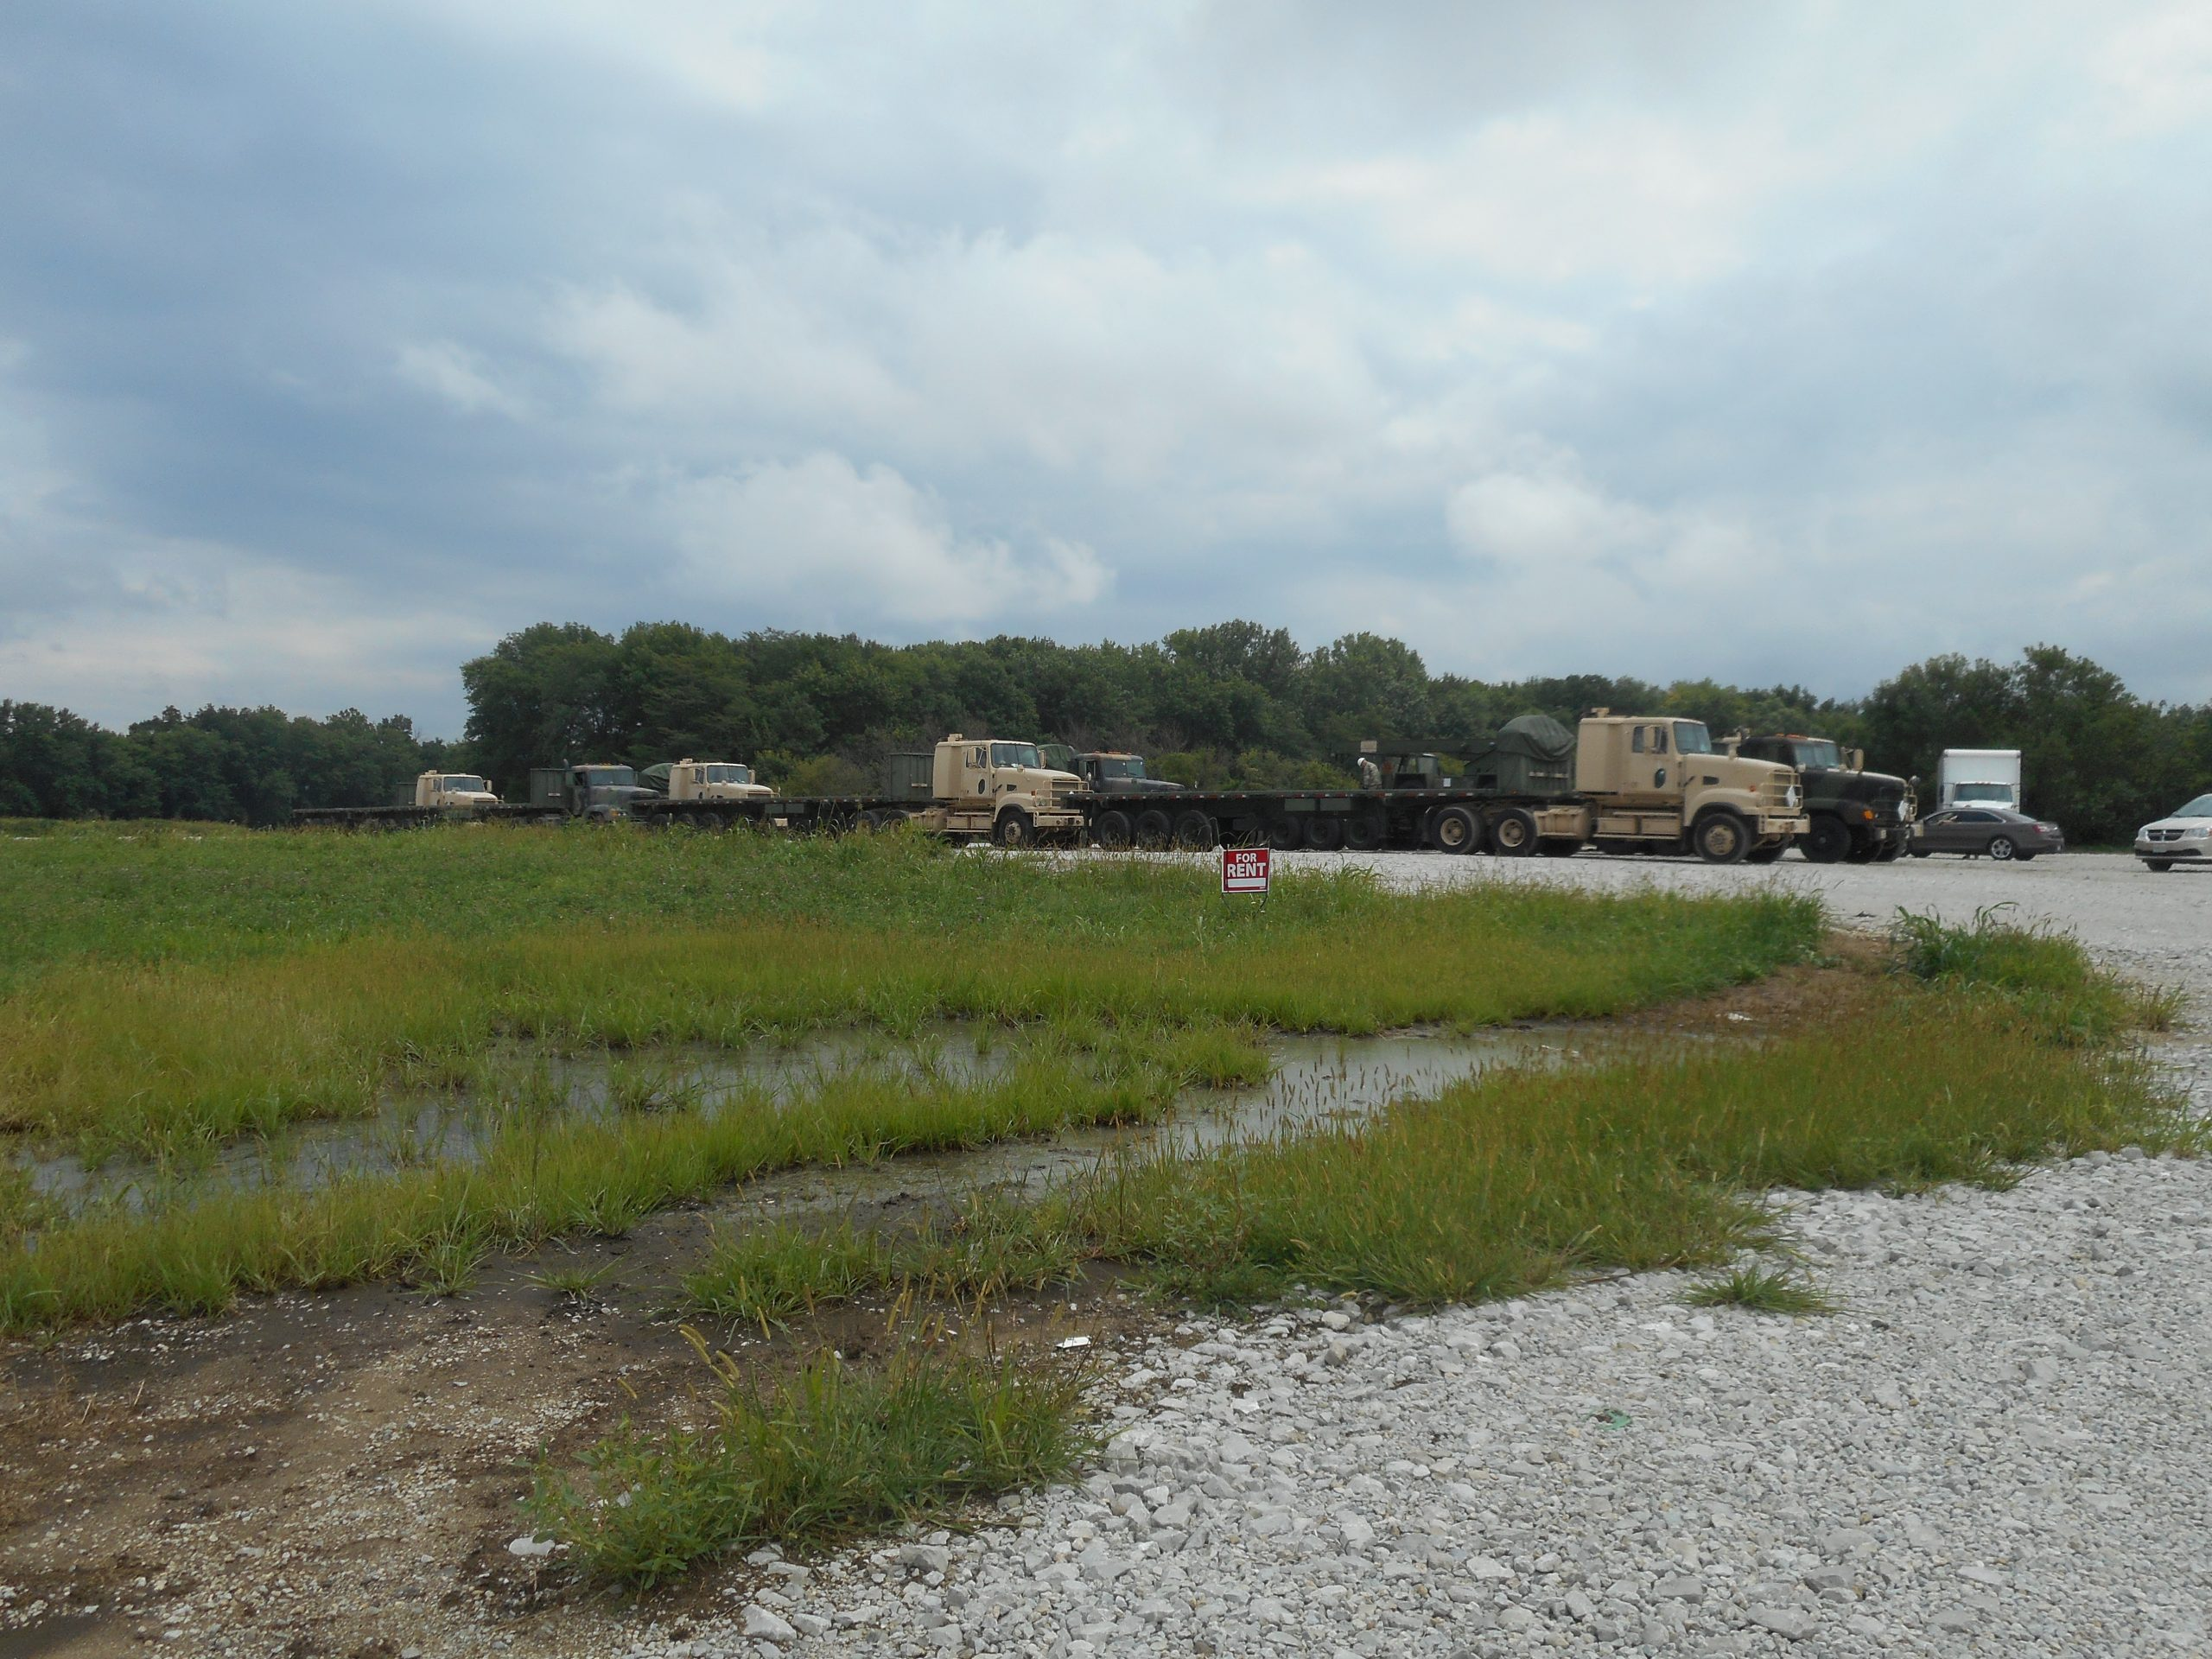 Looks to be Federal/Military Vehicles in Vandalia, but no threats to the area